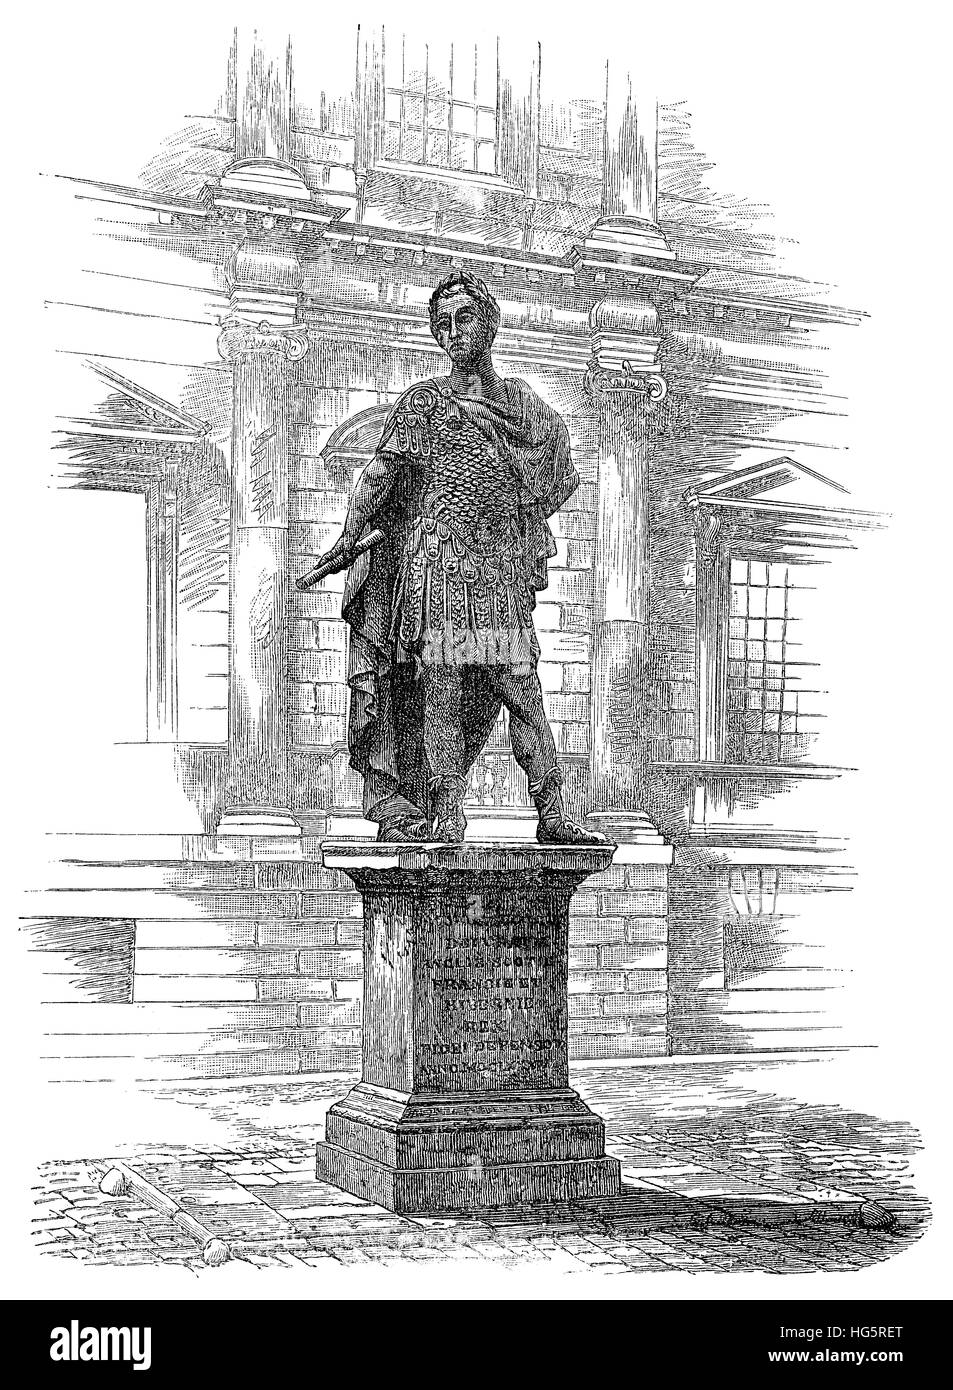 Black and white engraving of a statue of King James II, from the studio of Grinling Gibbons, from the November 1883 - Stock Image